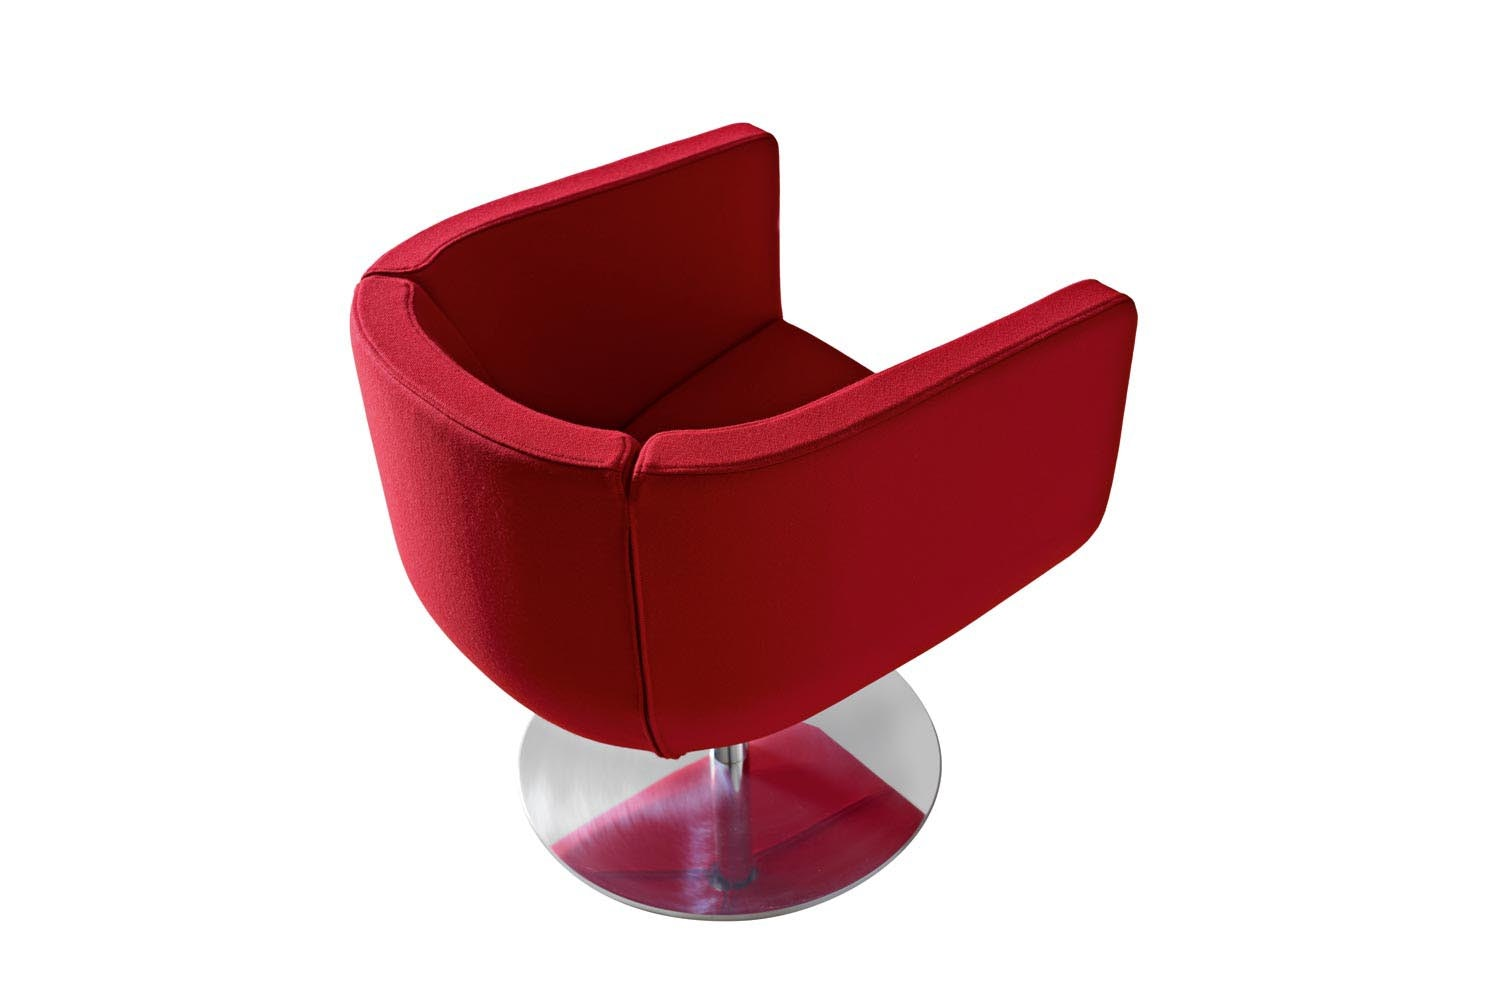 Tulip Sixtysix Armchair by Jeffrey Bernett for B&B Italia Project